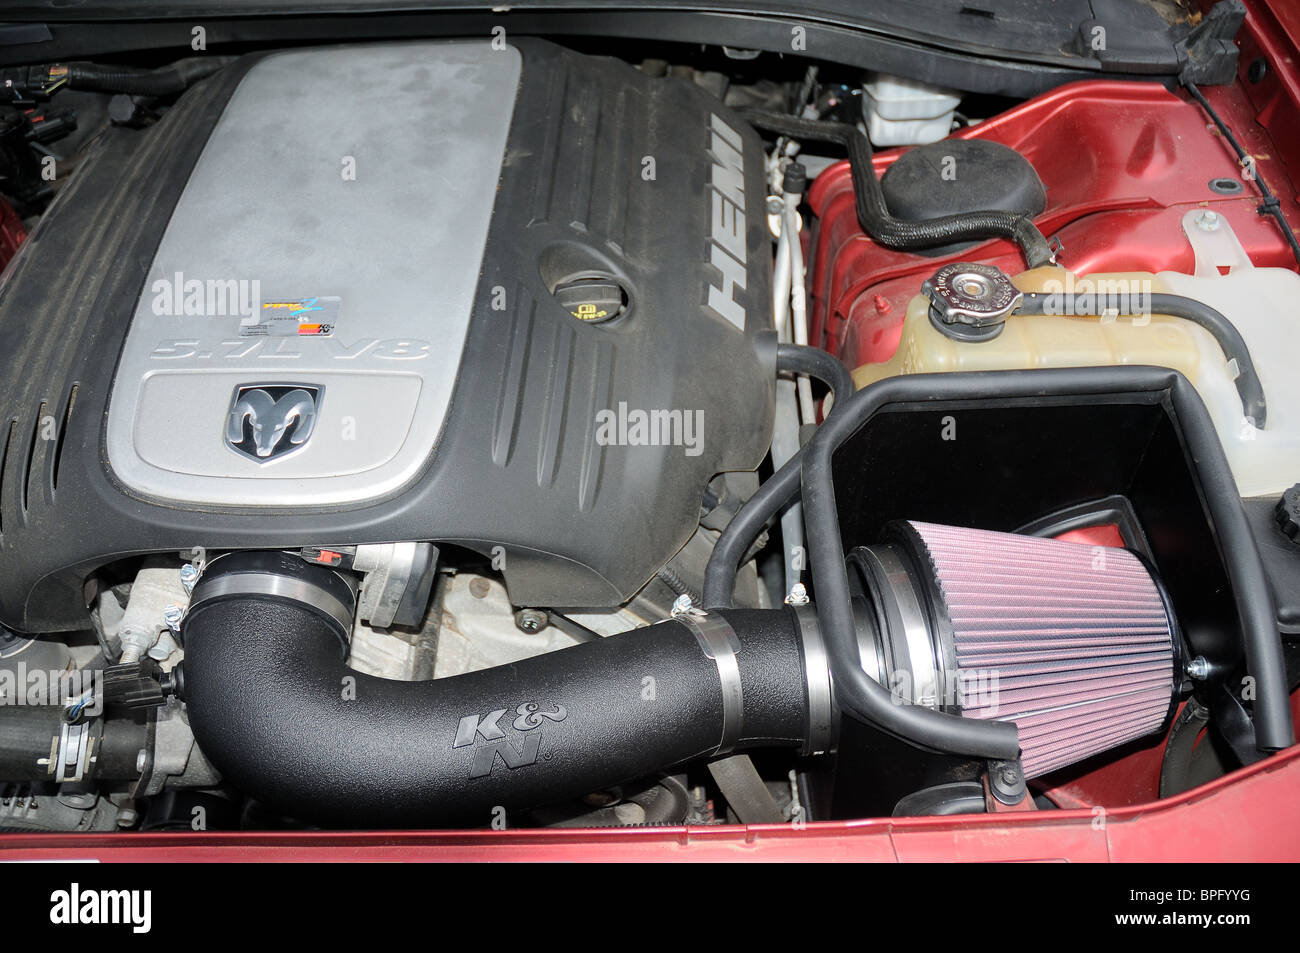 Air Intake Stock Photos Images Alamy Land Rover Cold Installed On A Dodge Charger Hemi V 8 Engine